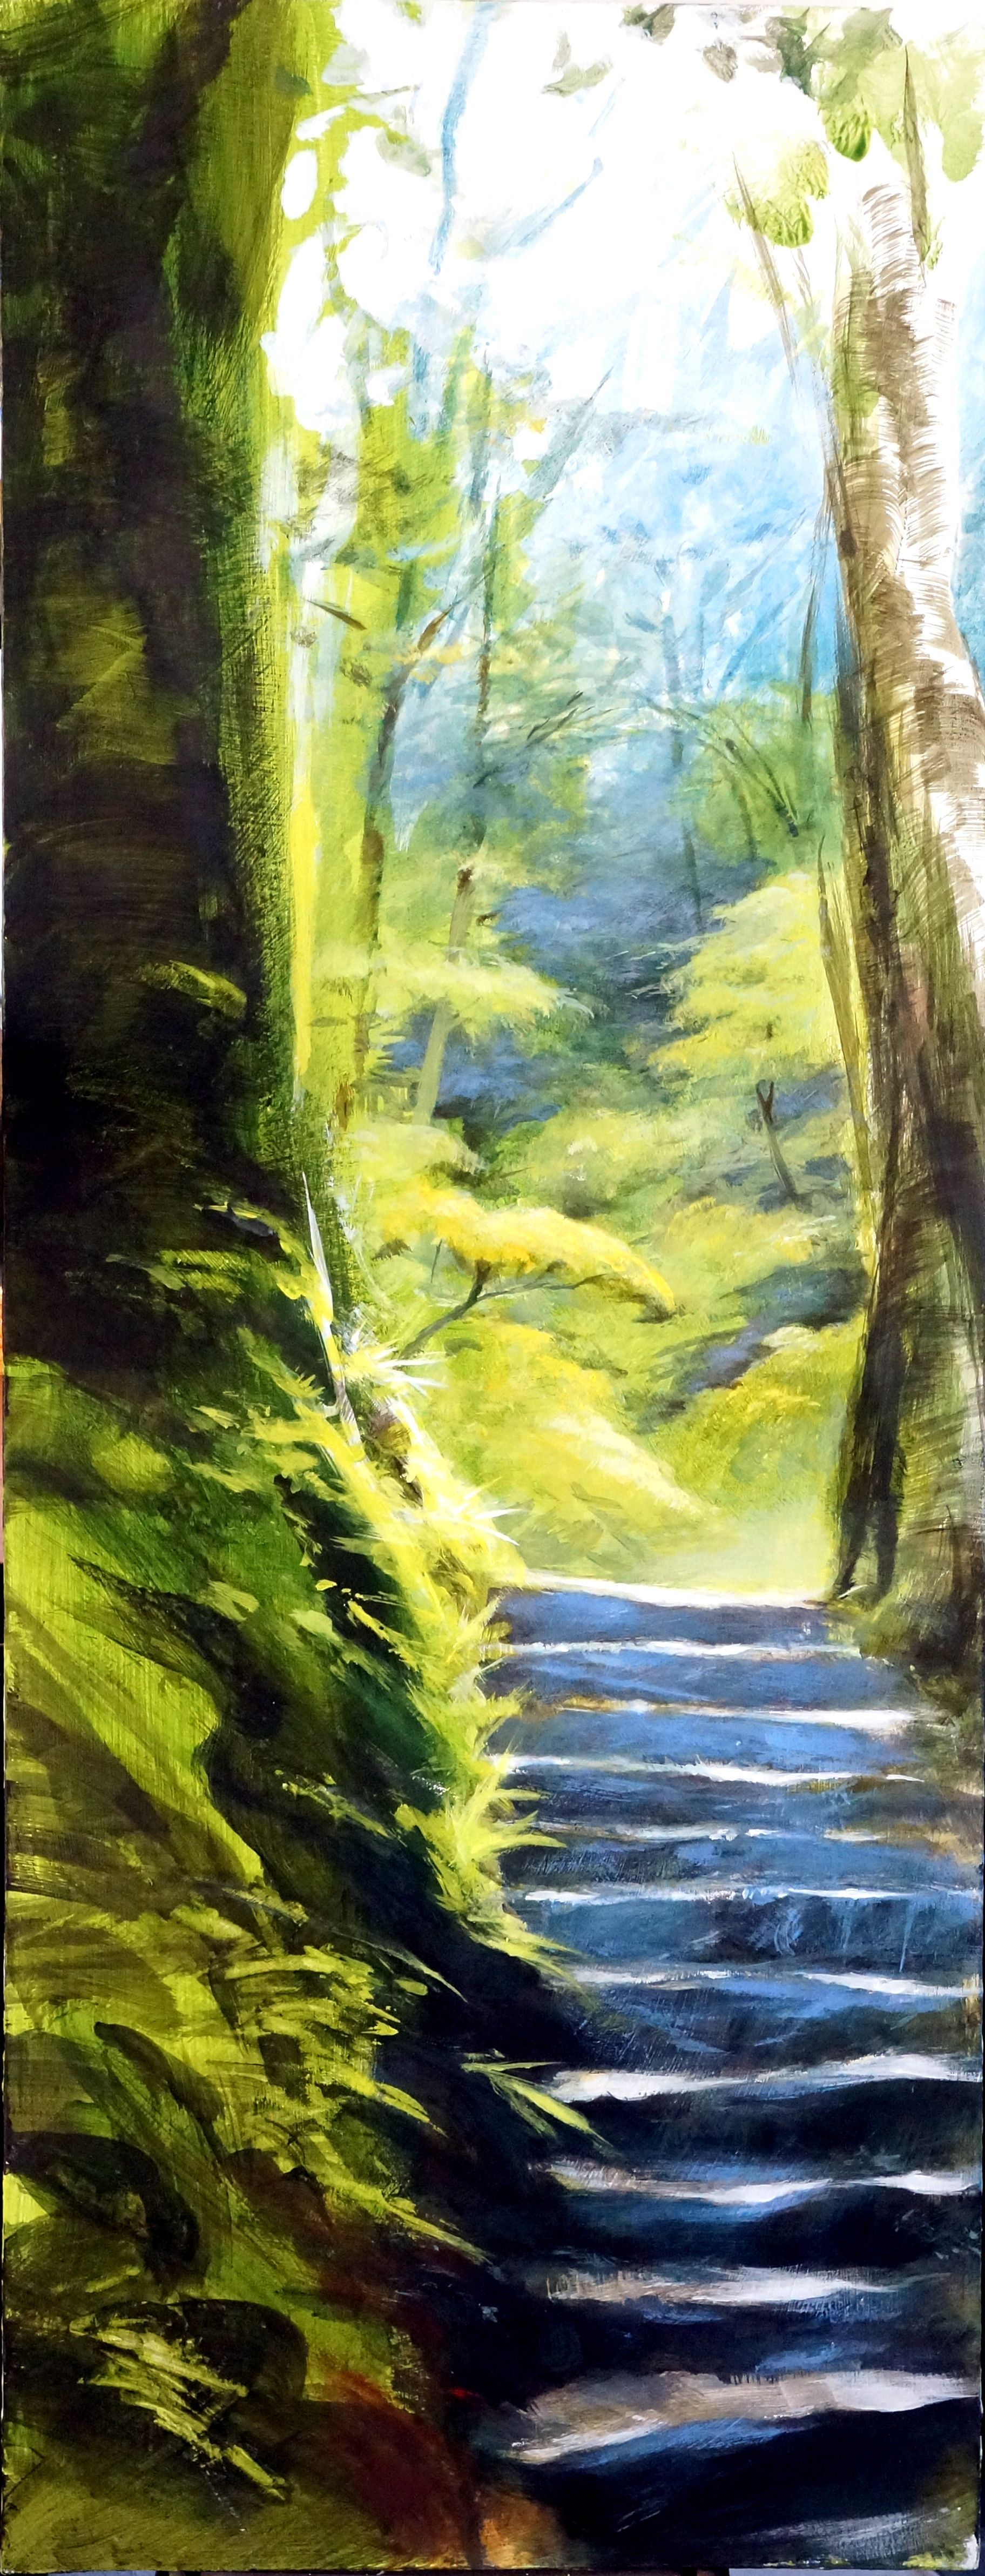 Forest Steps - acrylic painting on board by David Williams. Giclee prints available from www.southdownsgallery.co.uk